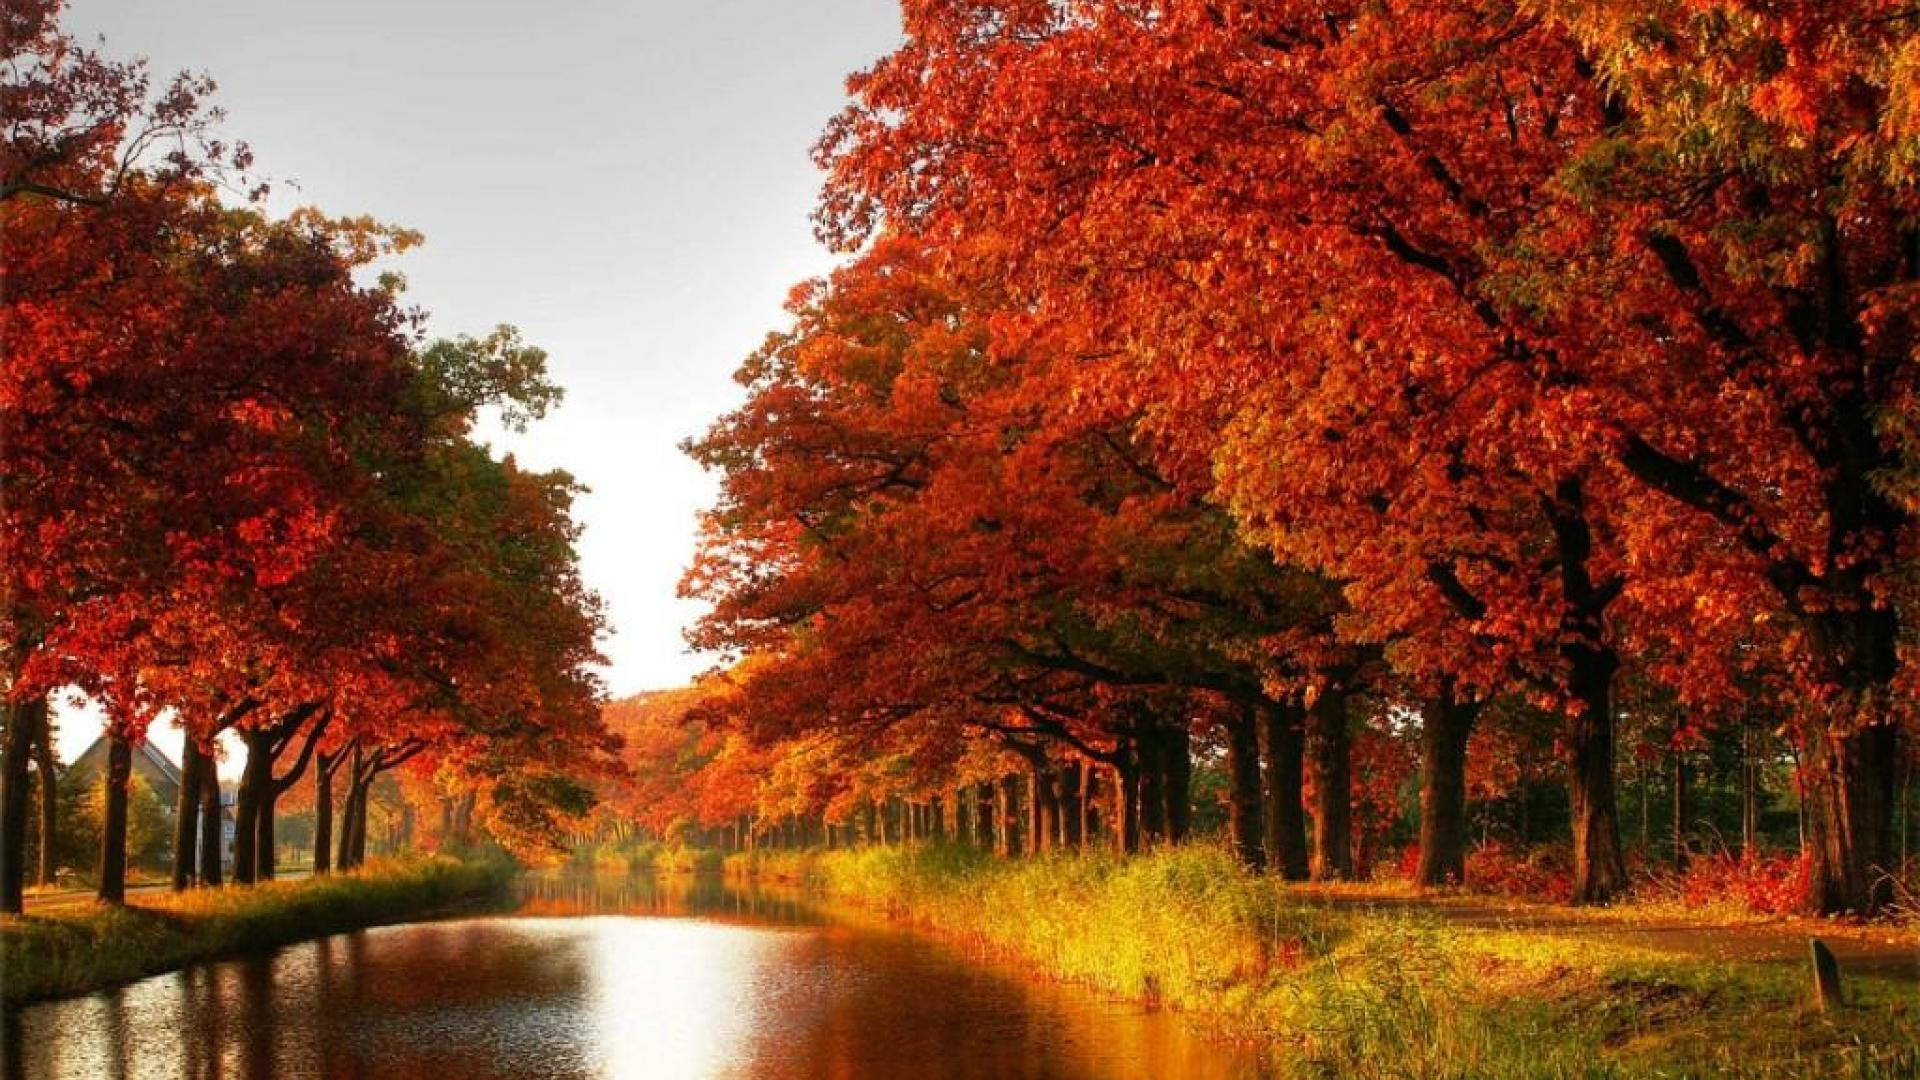 Autumn Tree Wallpaper (61+ Images